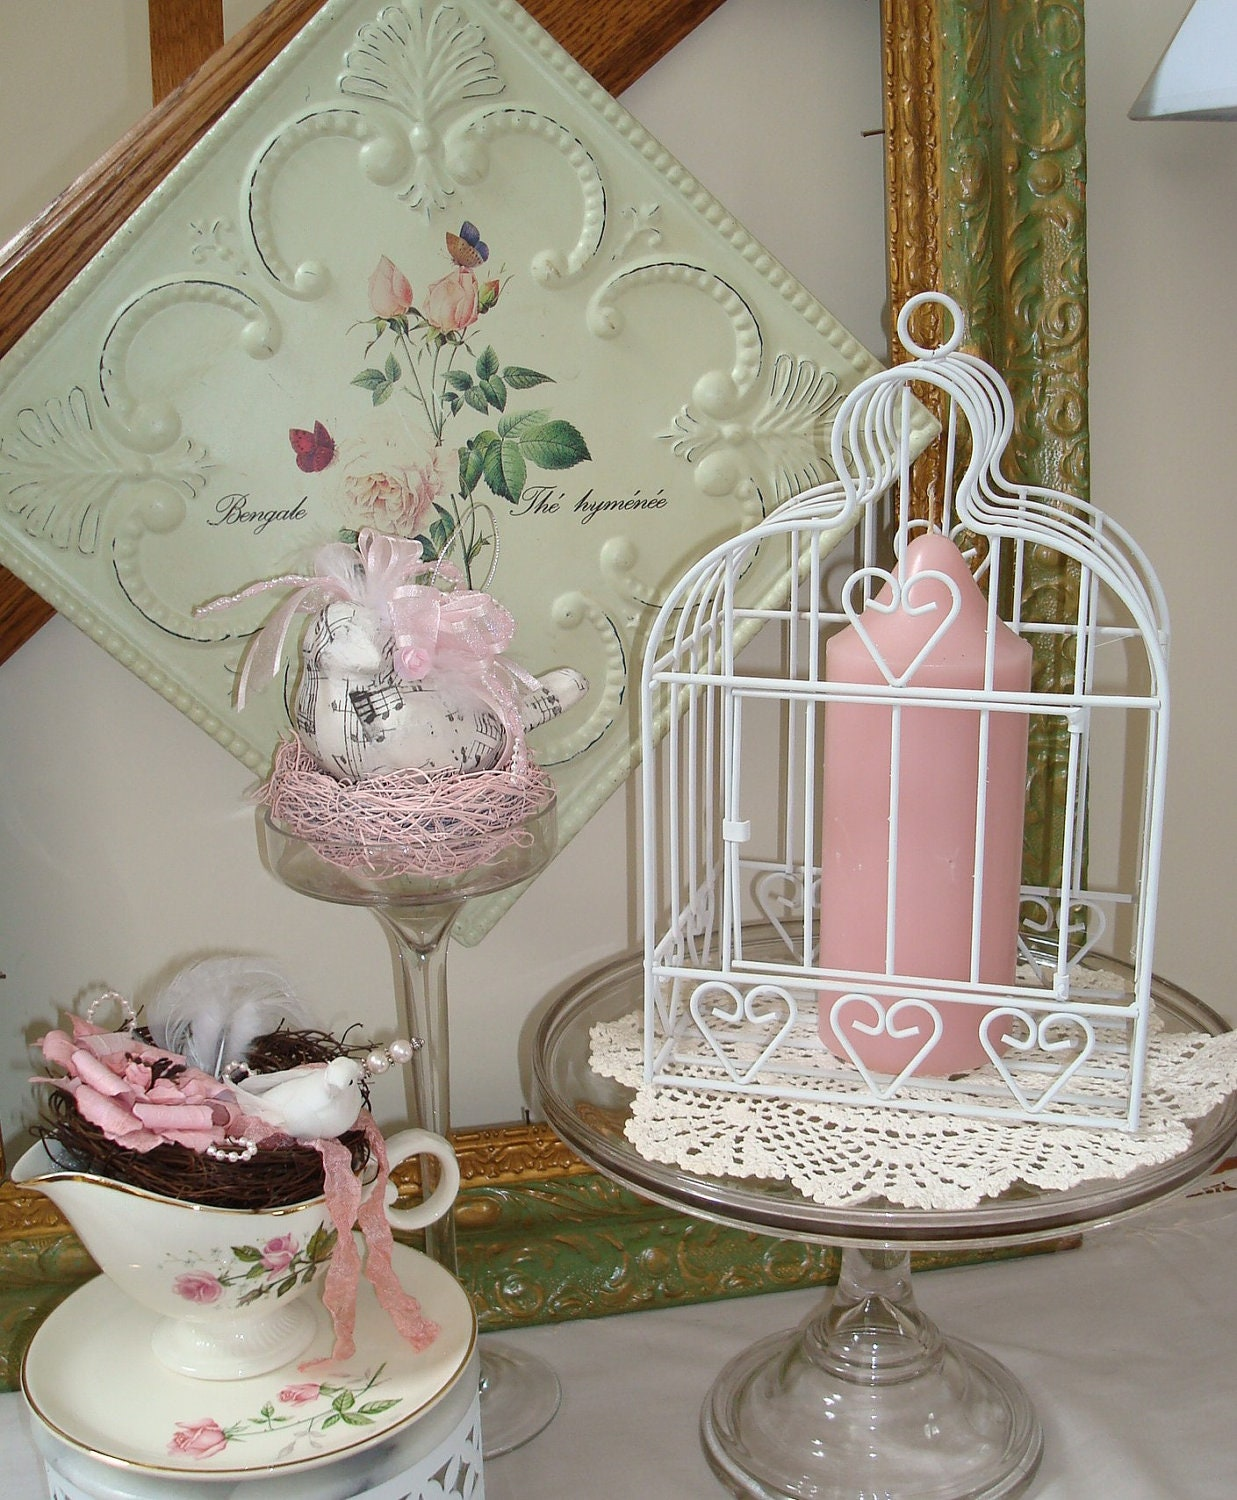 Metal Birdcage-White Home Decor By TapersnPetals On Etsy